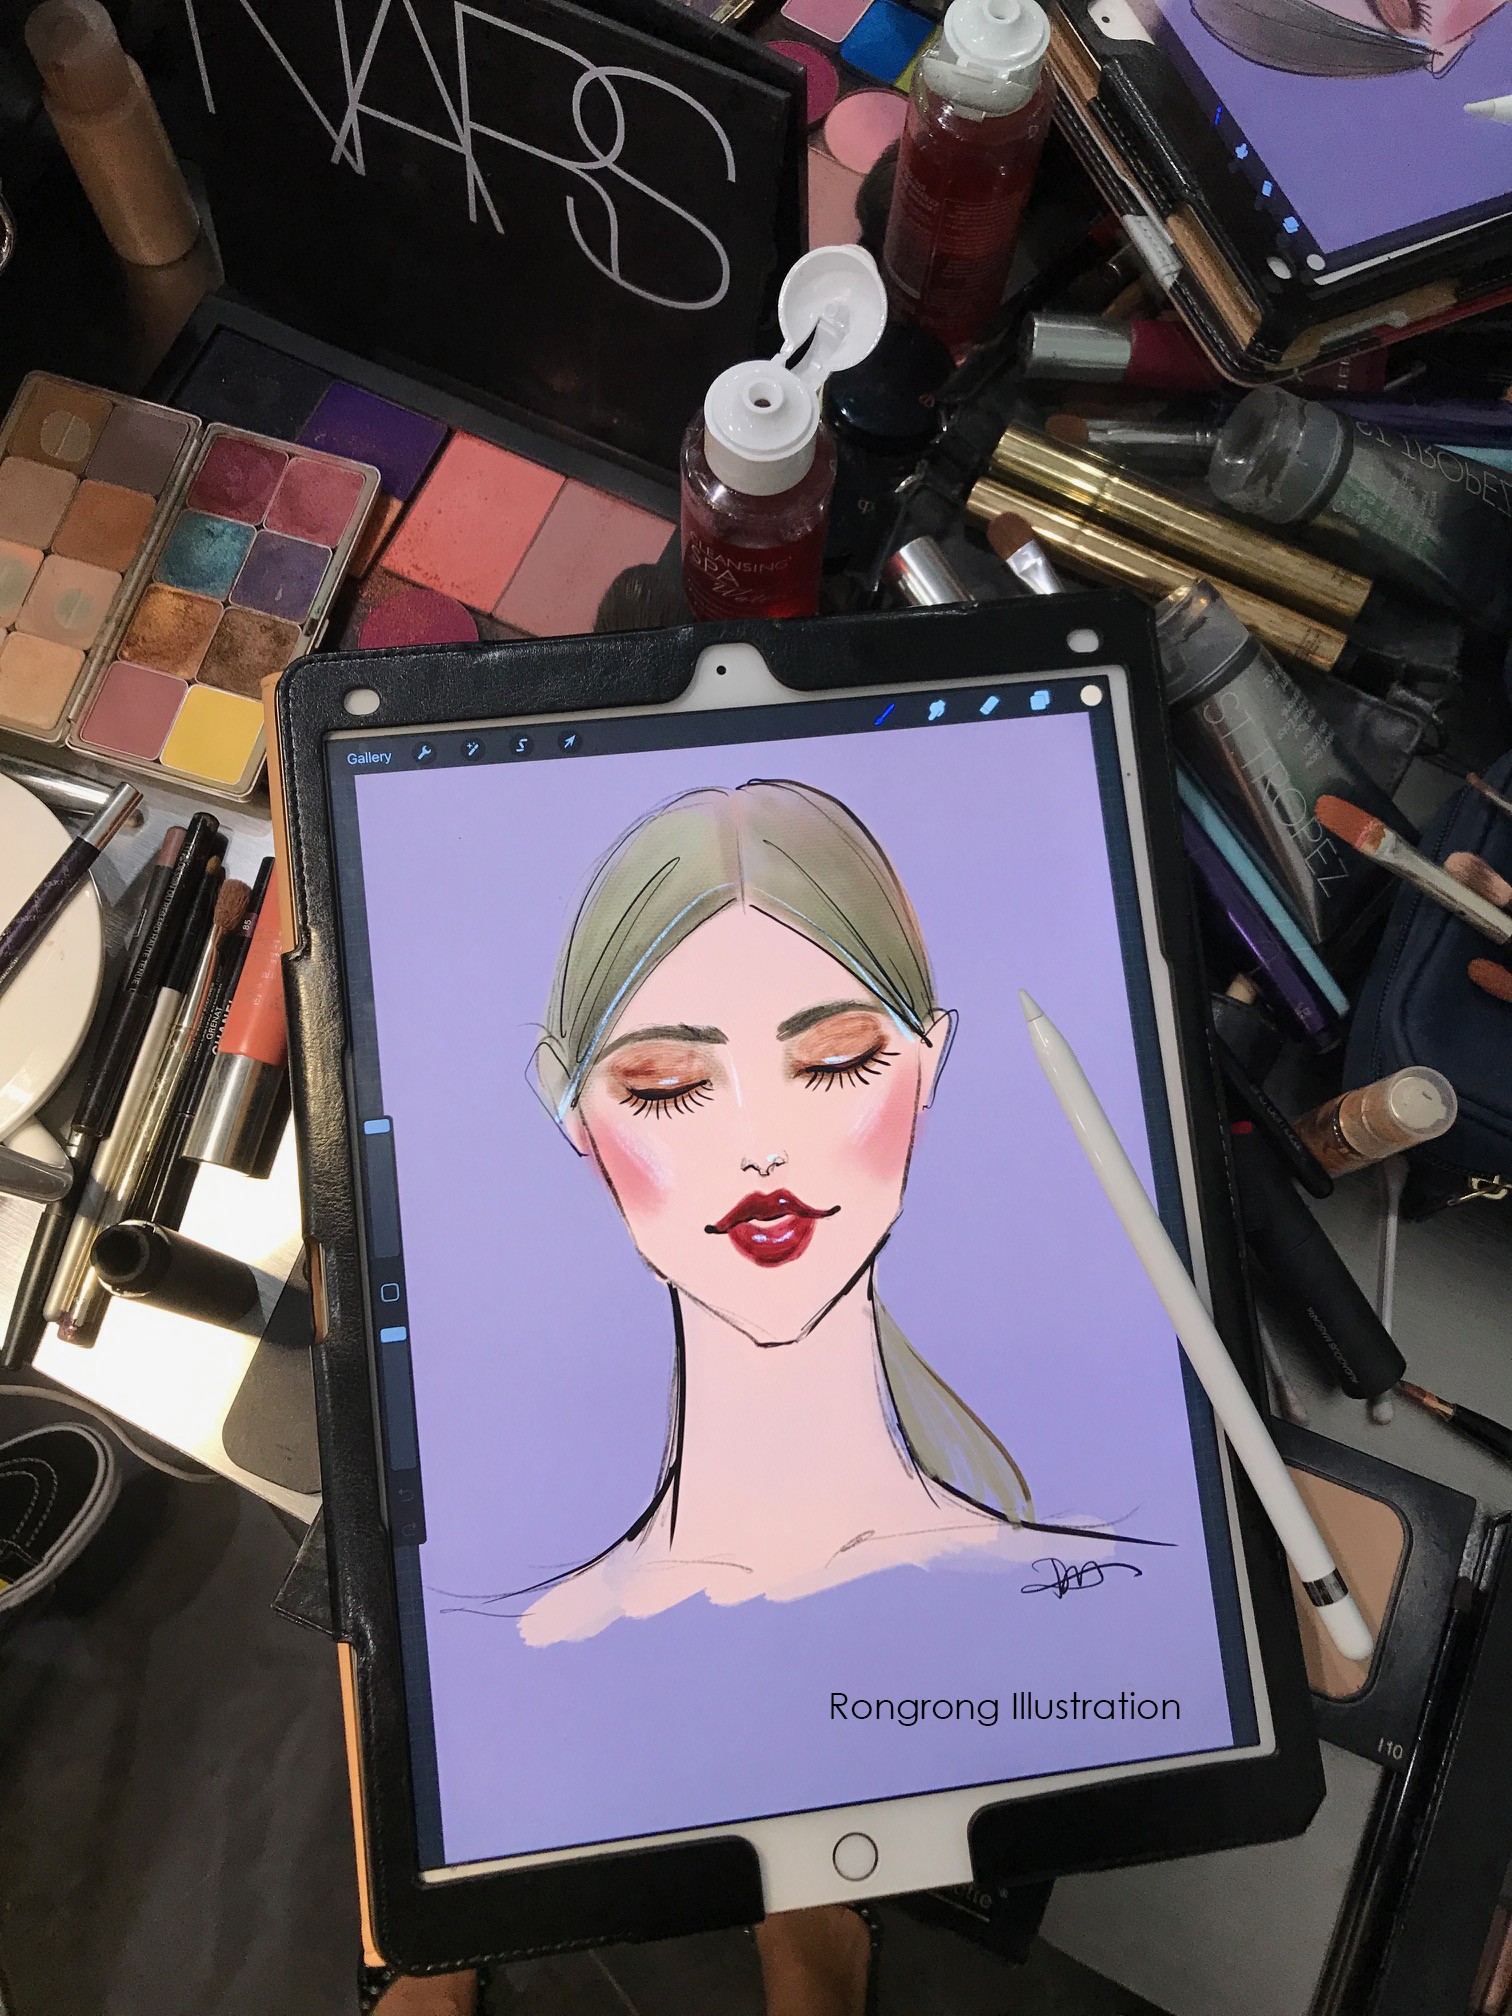 Rongrong DeVoe use Procreate and Ipad Pro at Fashion Week back stage copy.jpg